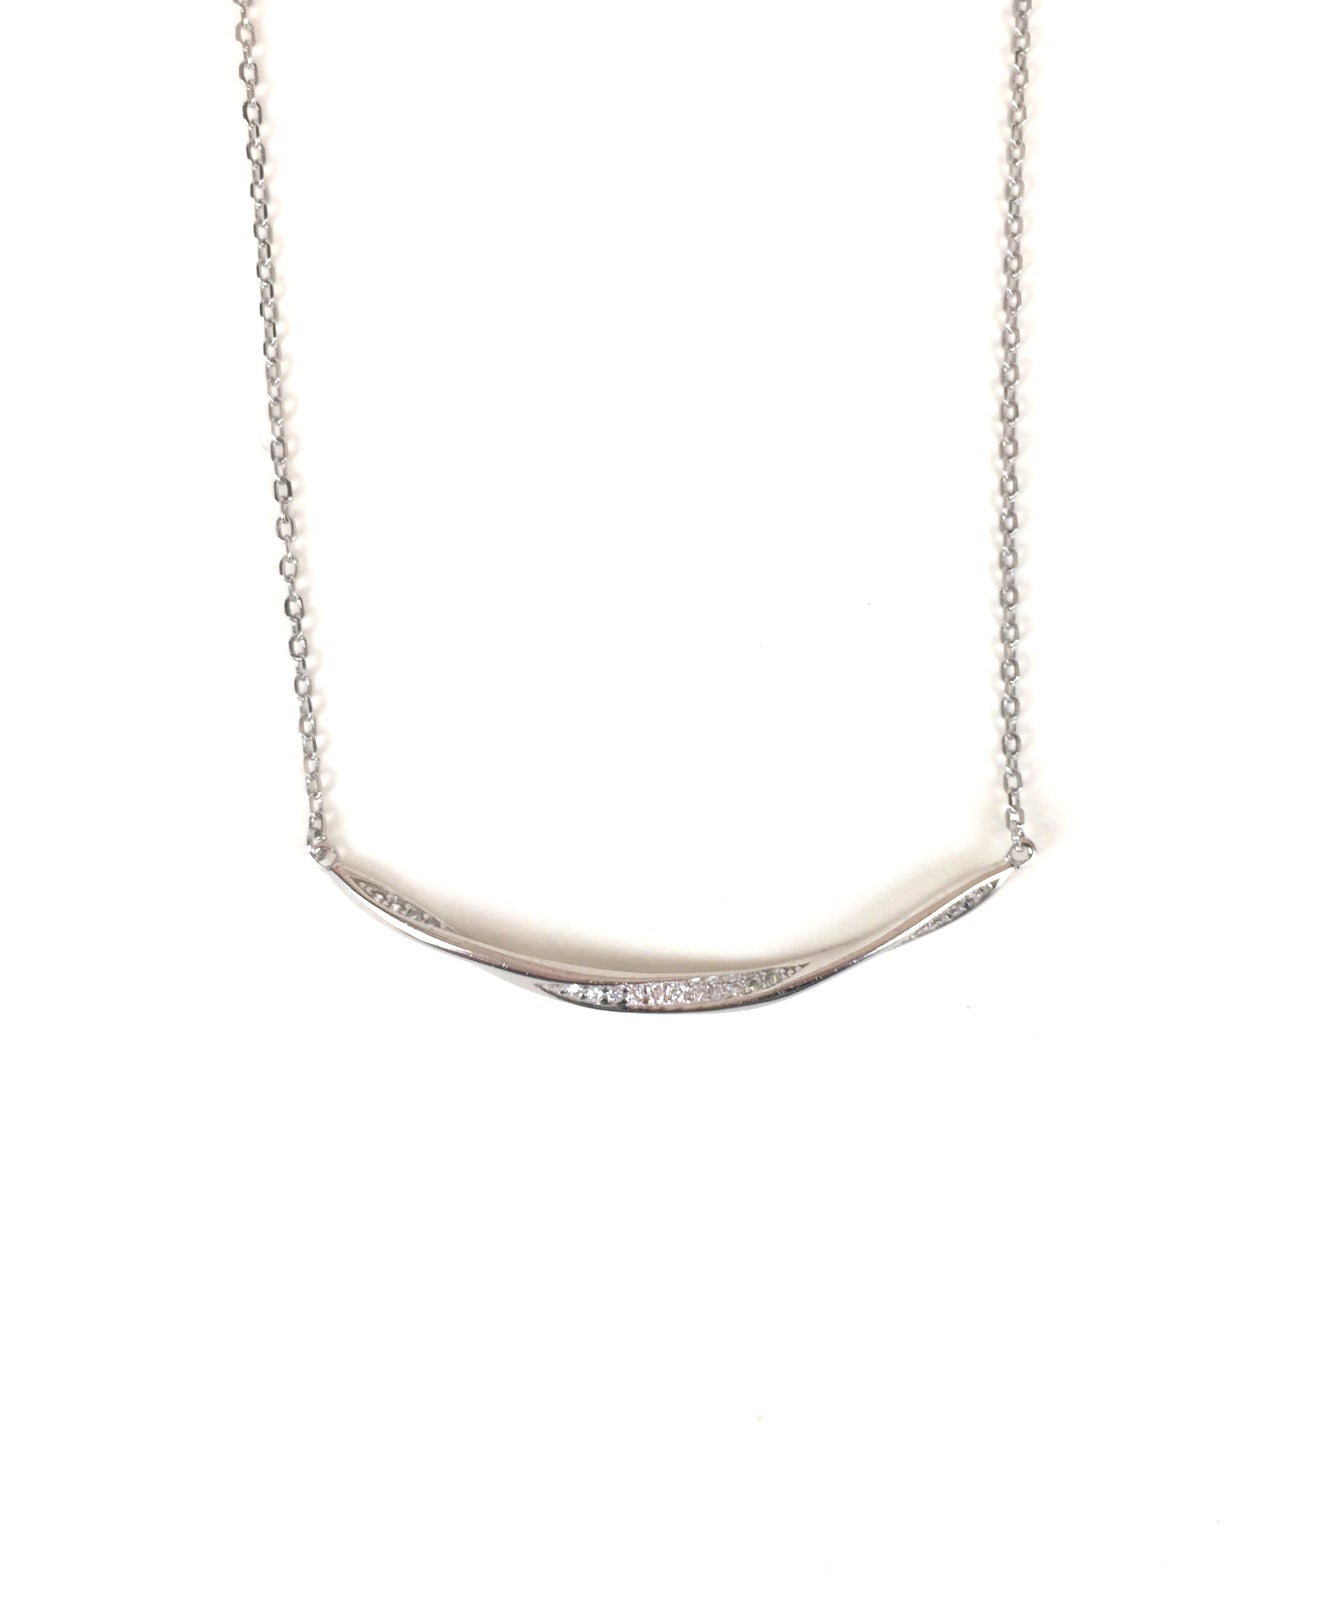 TWIST CURVE BAR PAVE CZ STERLING SILVER NECKLACE